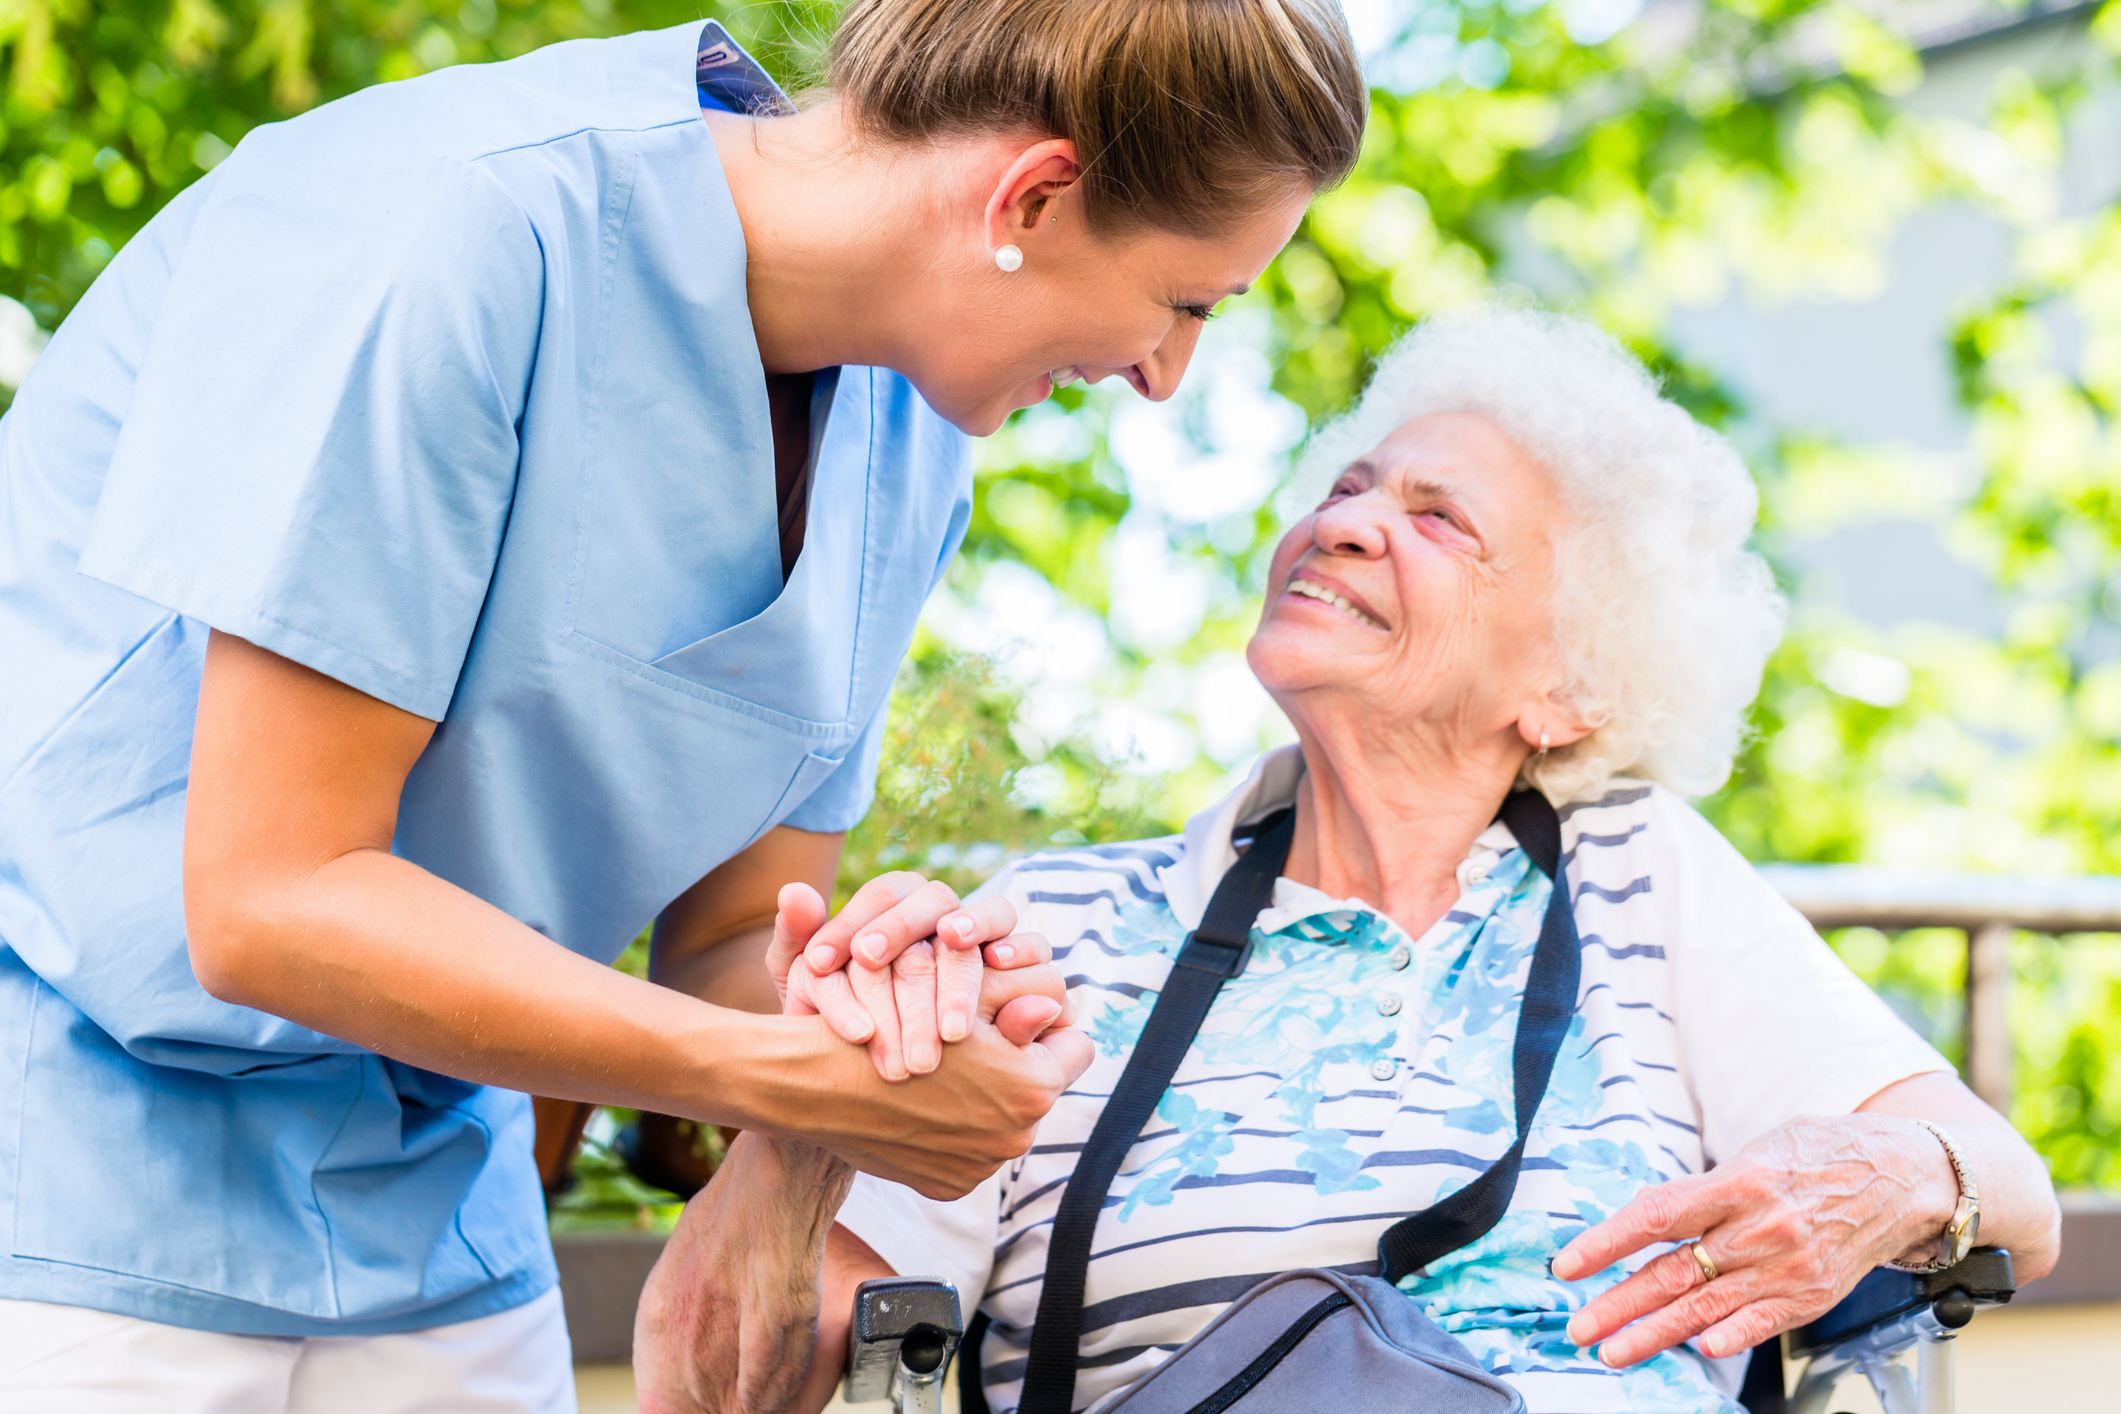 Quality CARE - When you have concerns about your health or wellness, ask…We listen, and answer